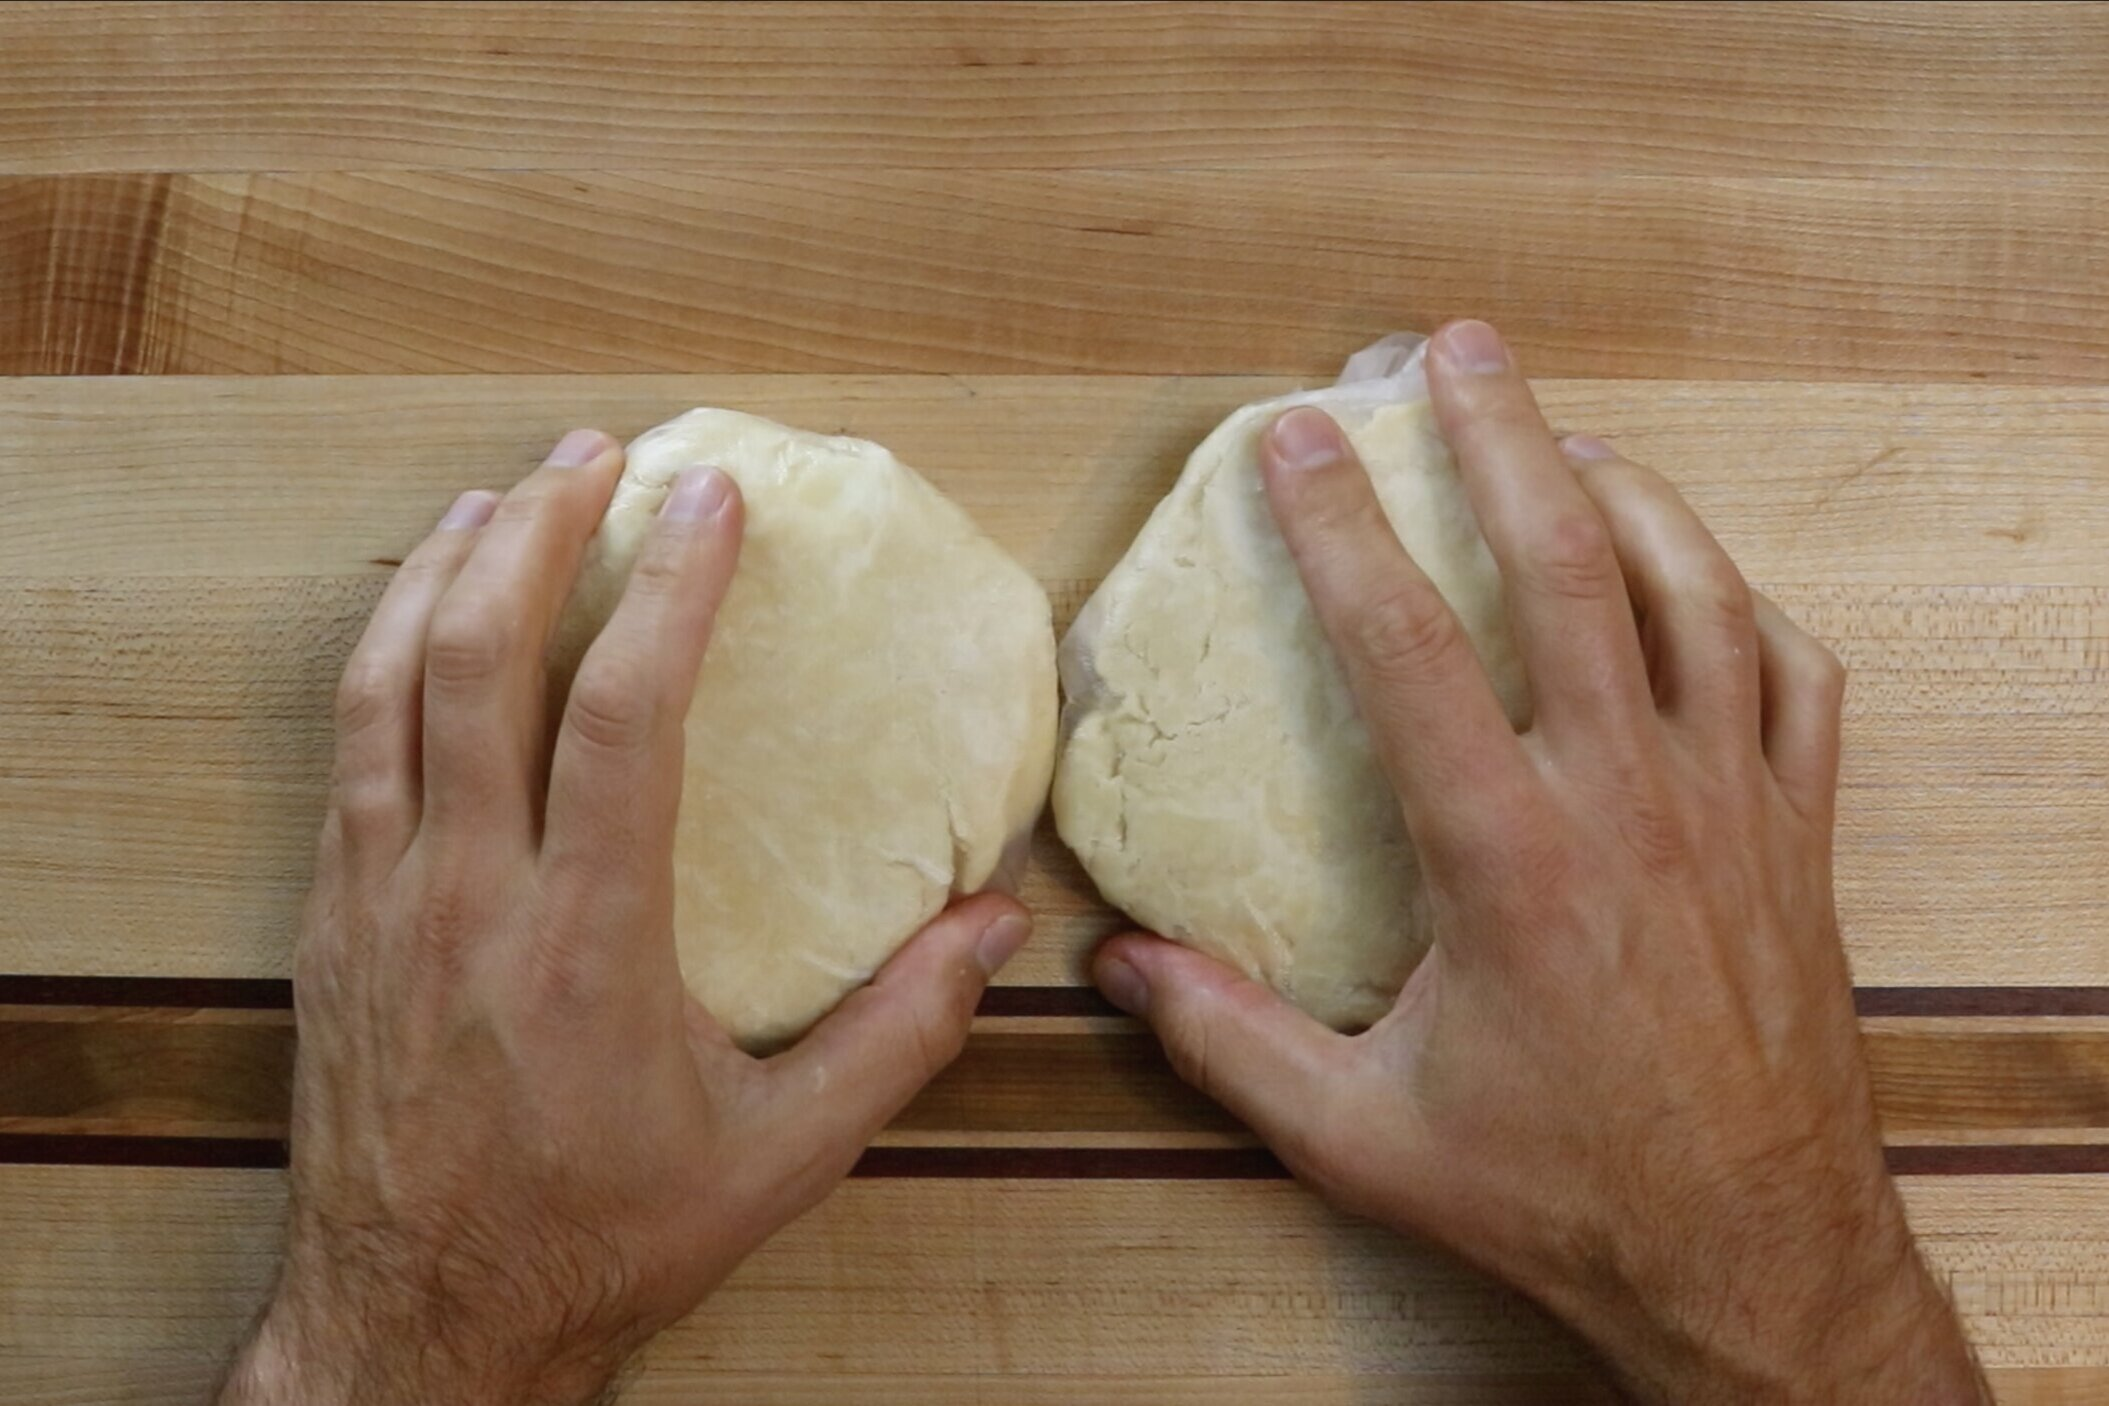 4. Finish by kneading the dough on a floured surface with your hands until you form a large ball. Divide the pie dough in half and flatten the balls into a discs. Wrap in plastic wrap and chill in refrigerator for 2 hours. -